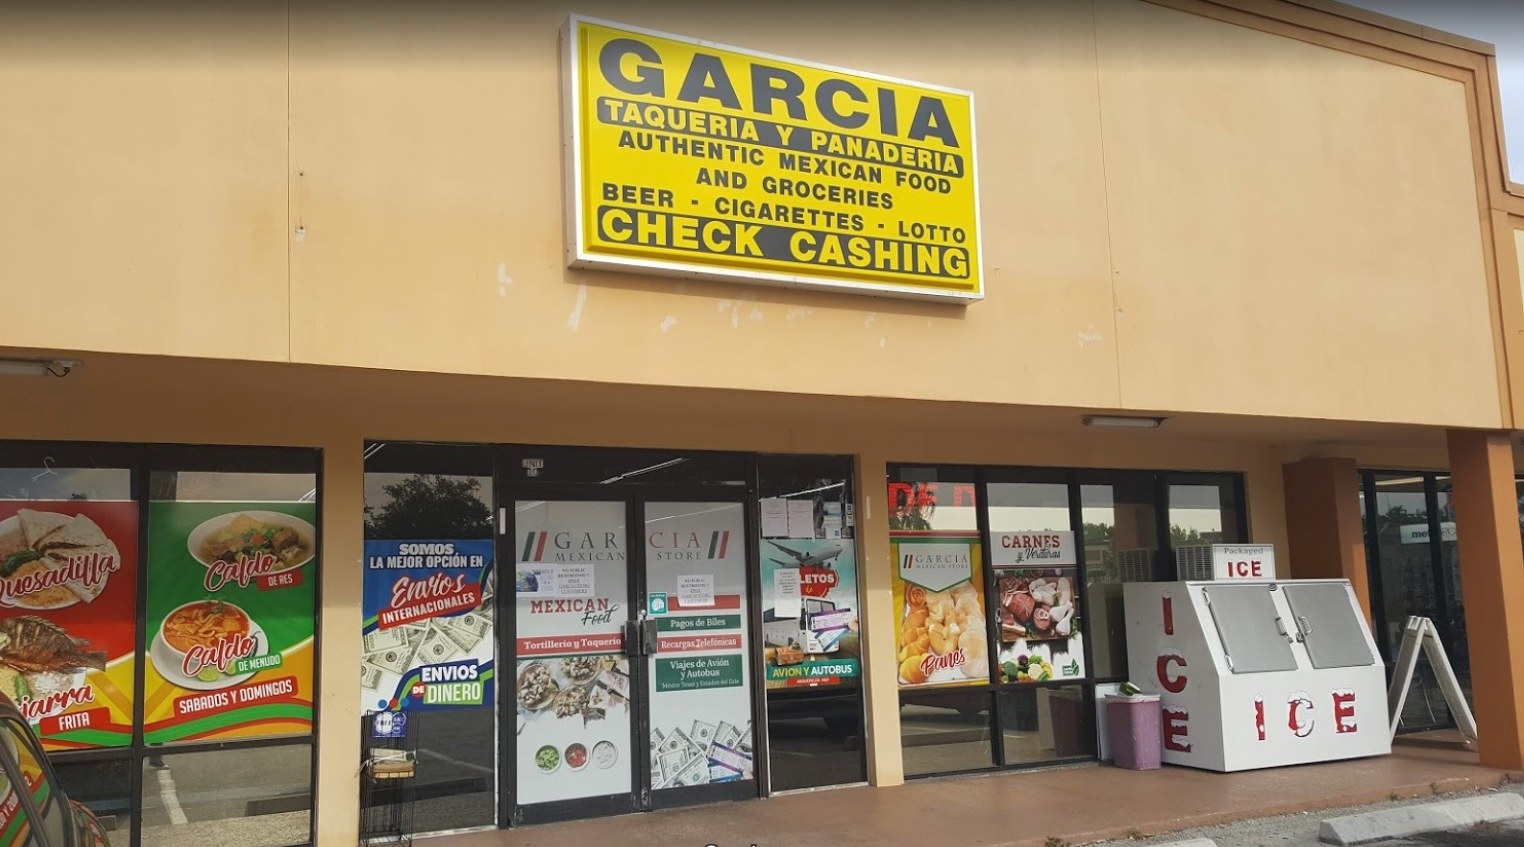 Garcia Mexican Store